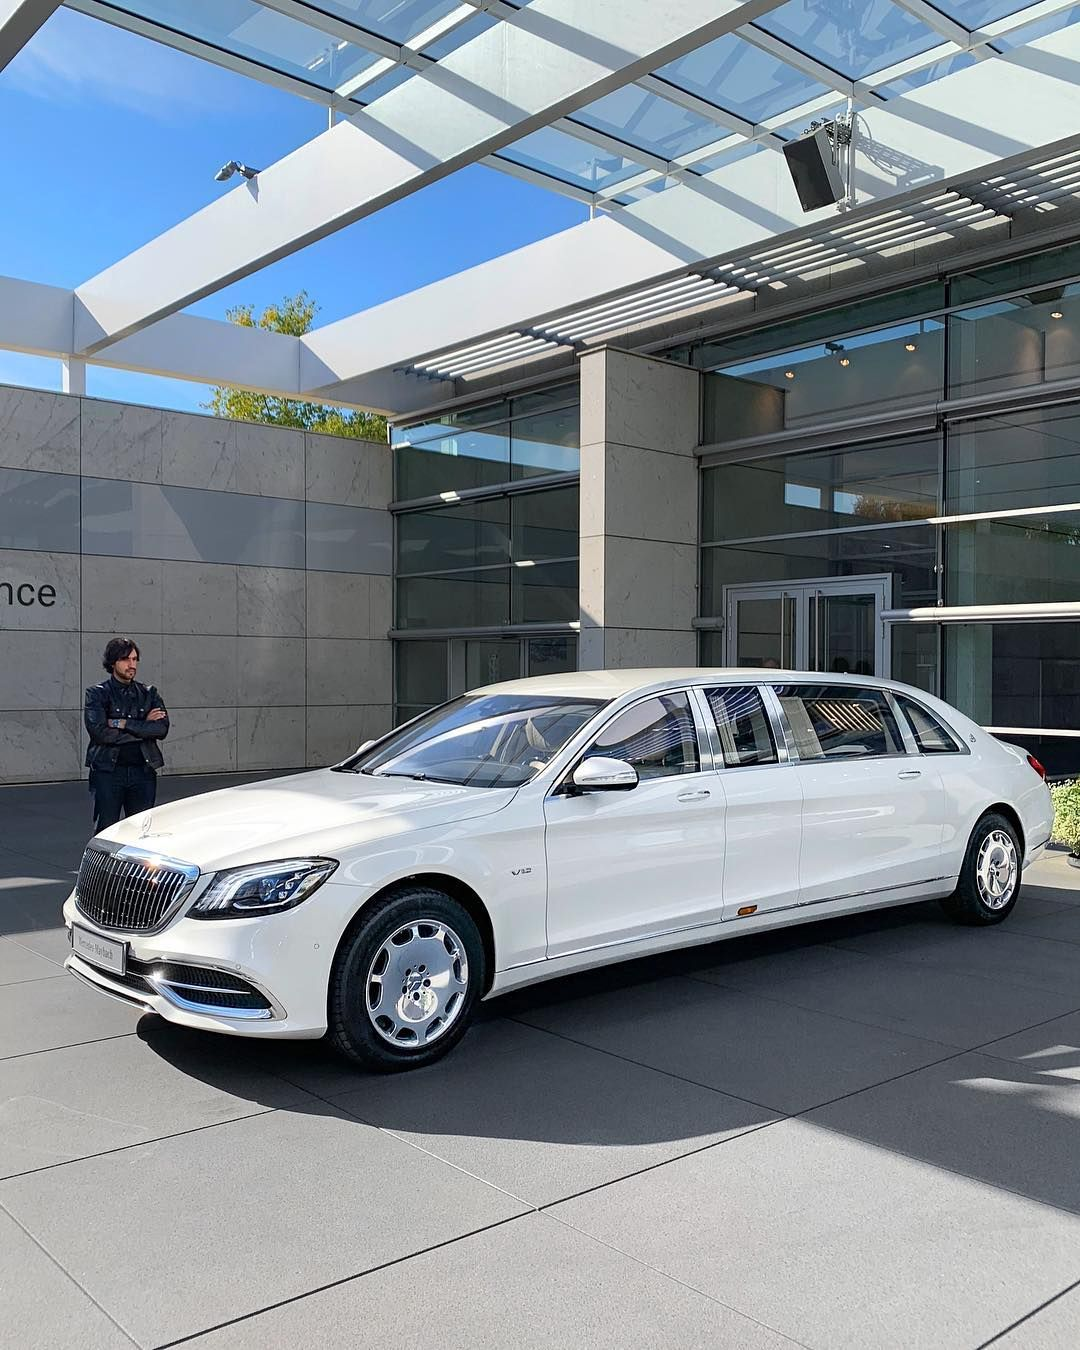 The Newly Updated 2019 S650 Maybach Pullman @rokenr On